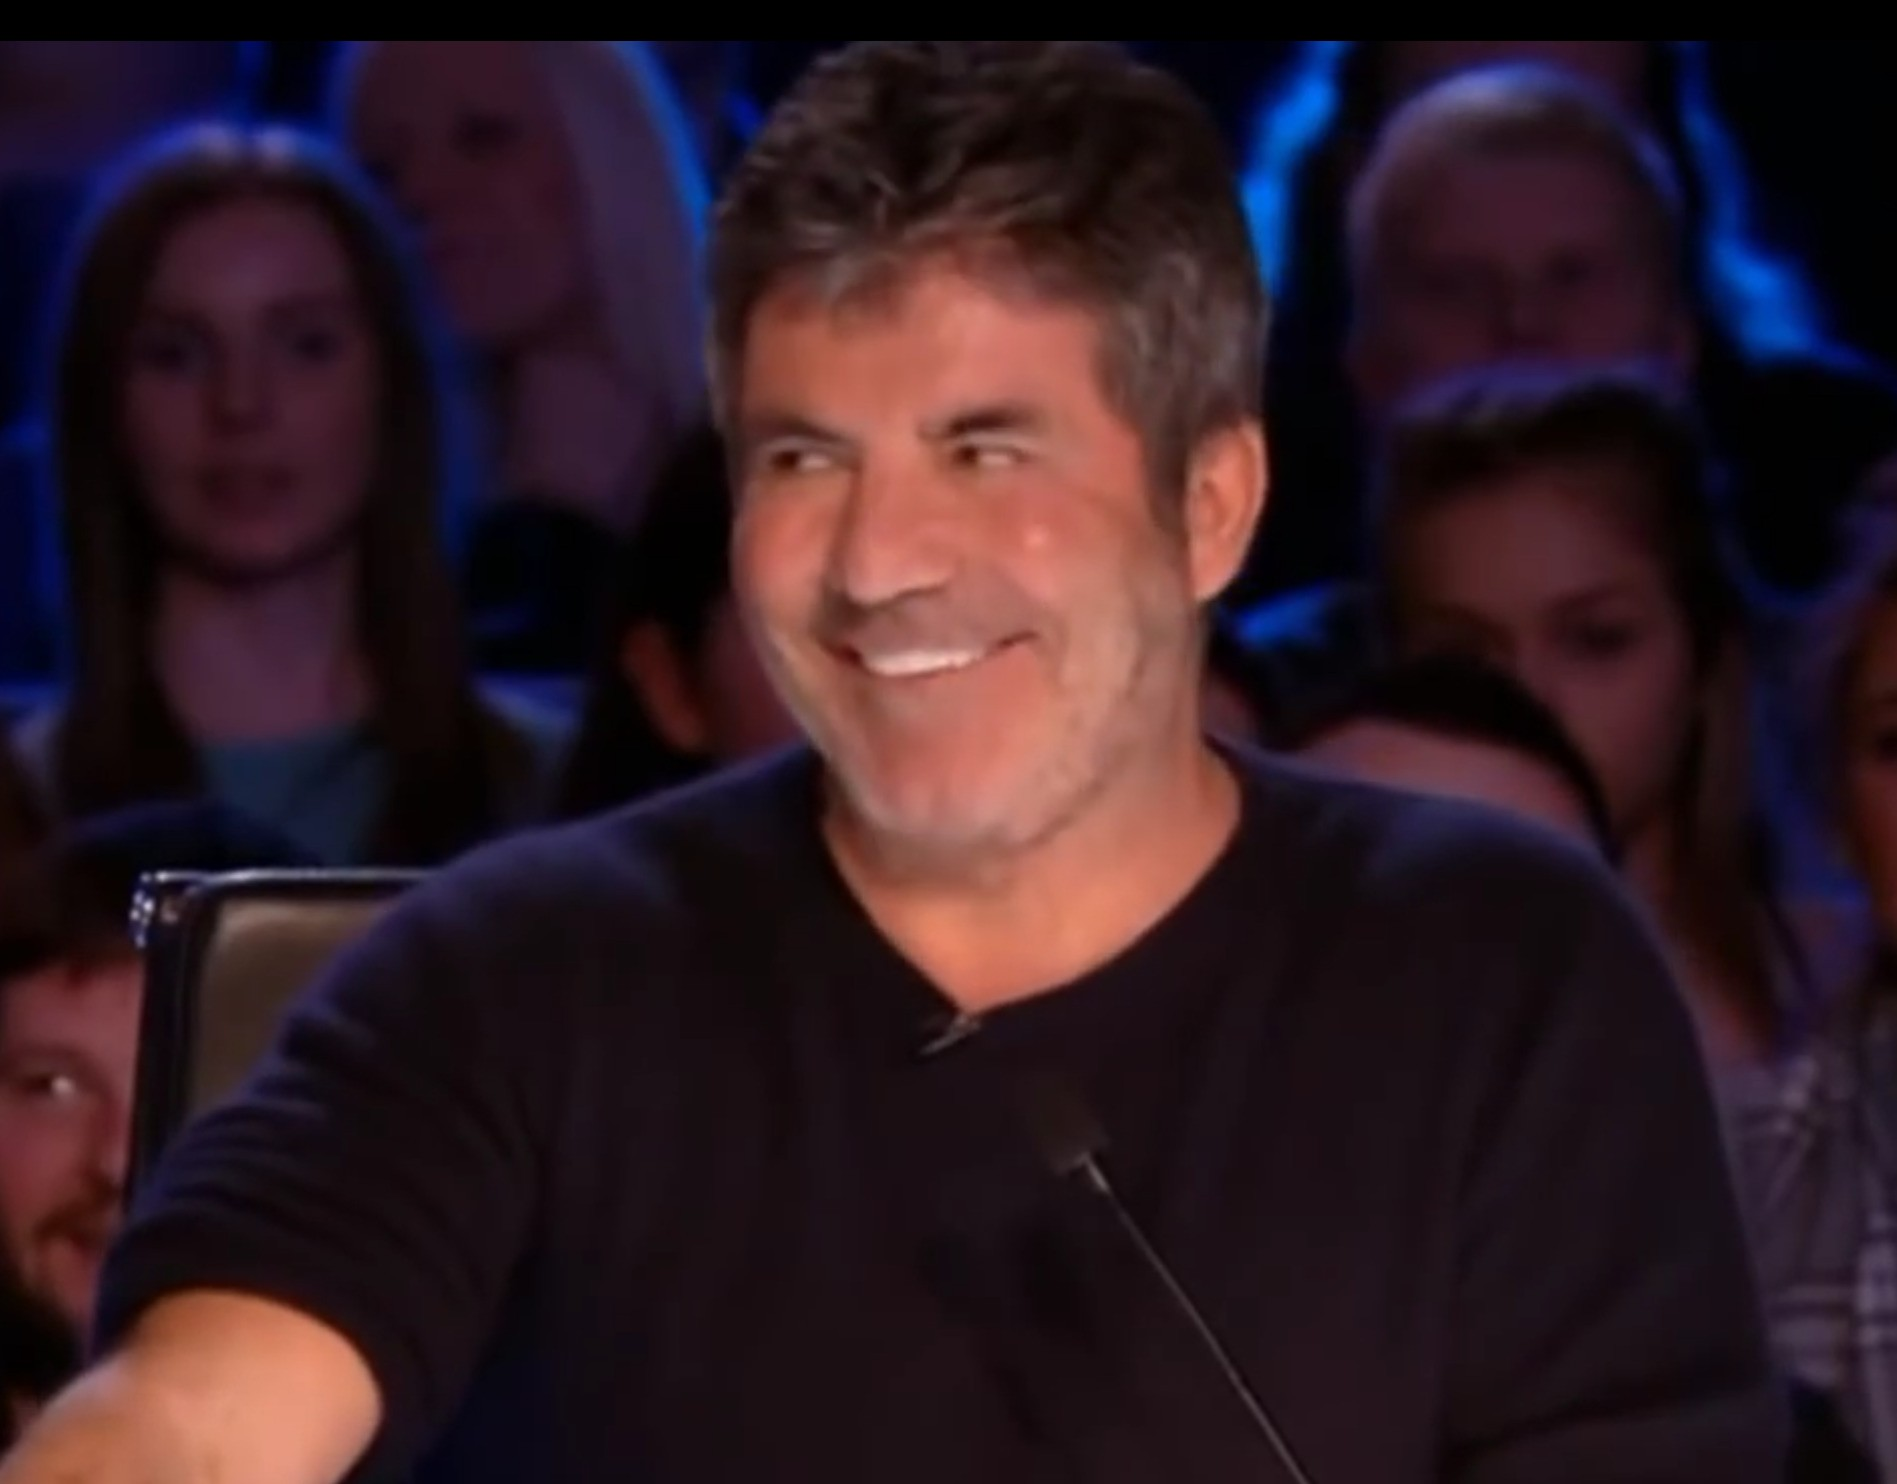 Look! Simon can smile! , 😃